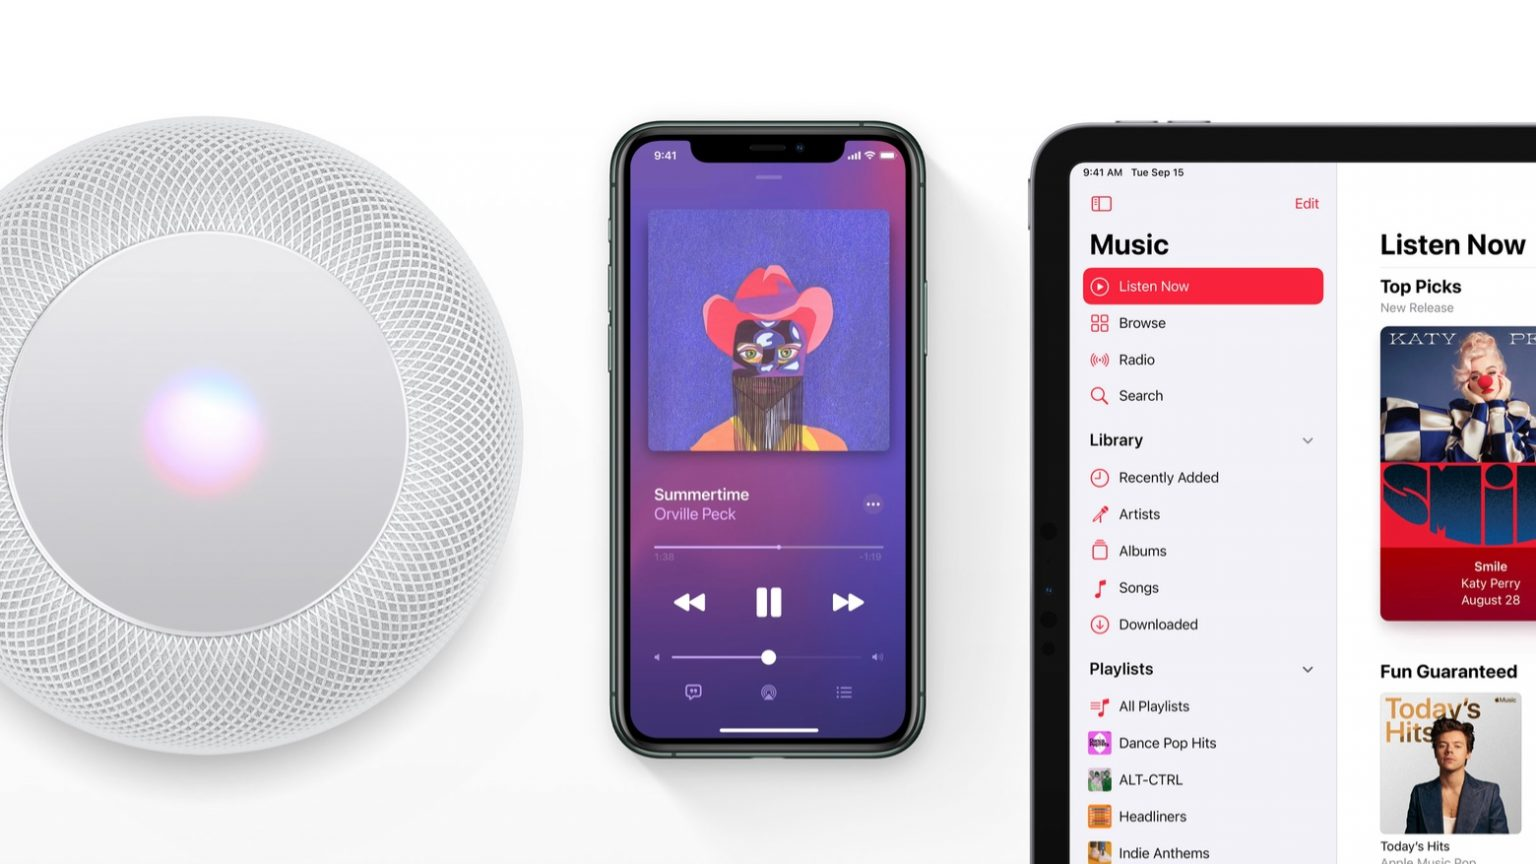 Apple Music pays musicians far more to stream each song than Spotify does